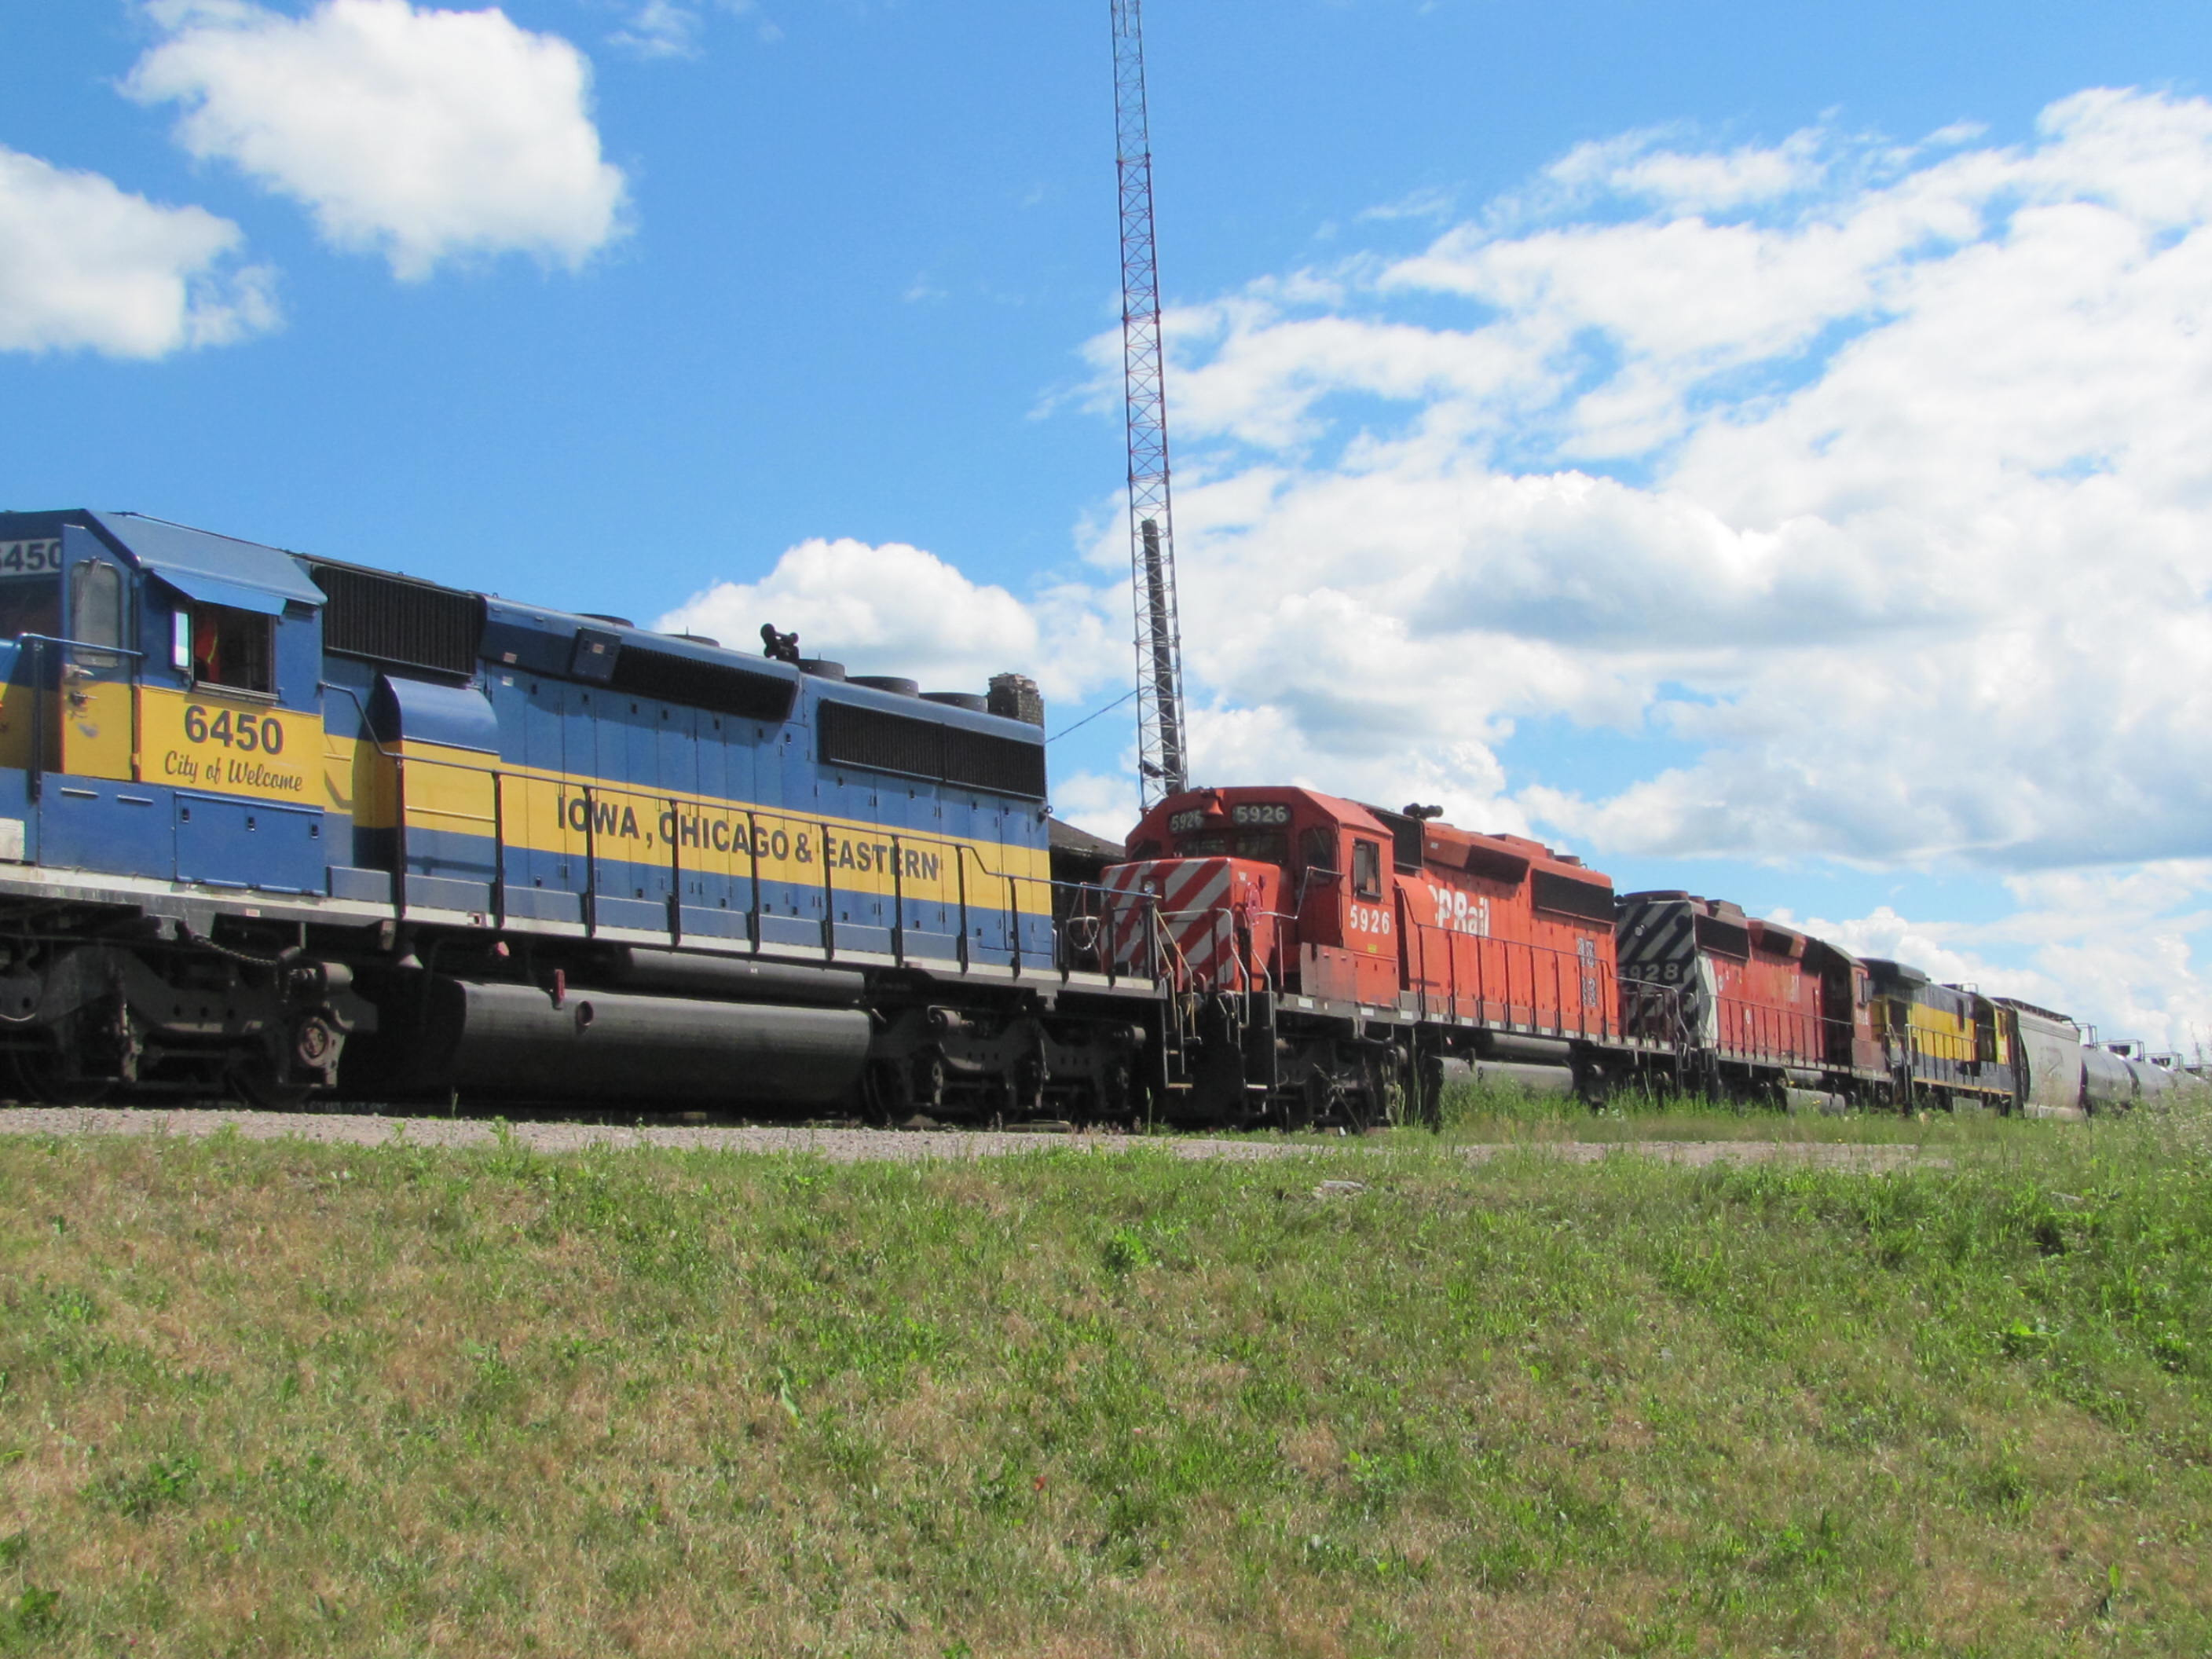 ICE 6450, CP 5926 and CP 5928 in McAdam, NB 2012/07/02 by Jody Robinson